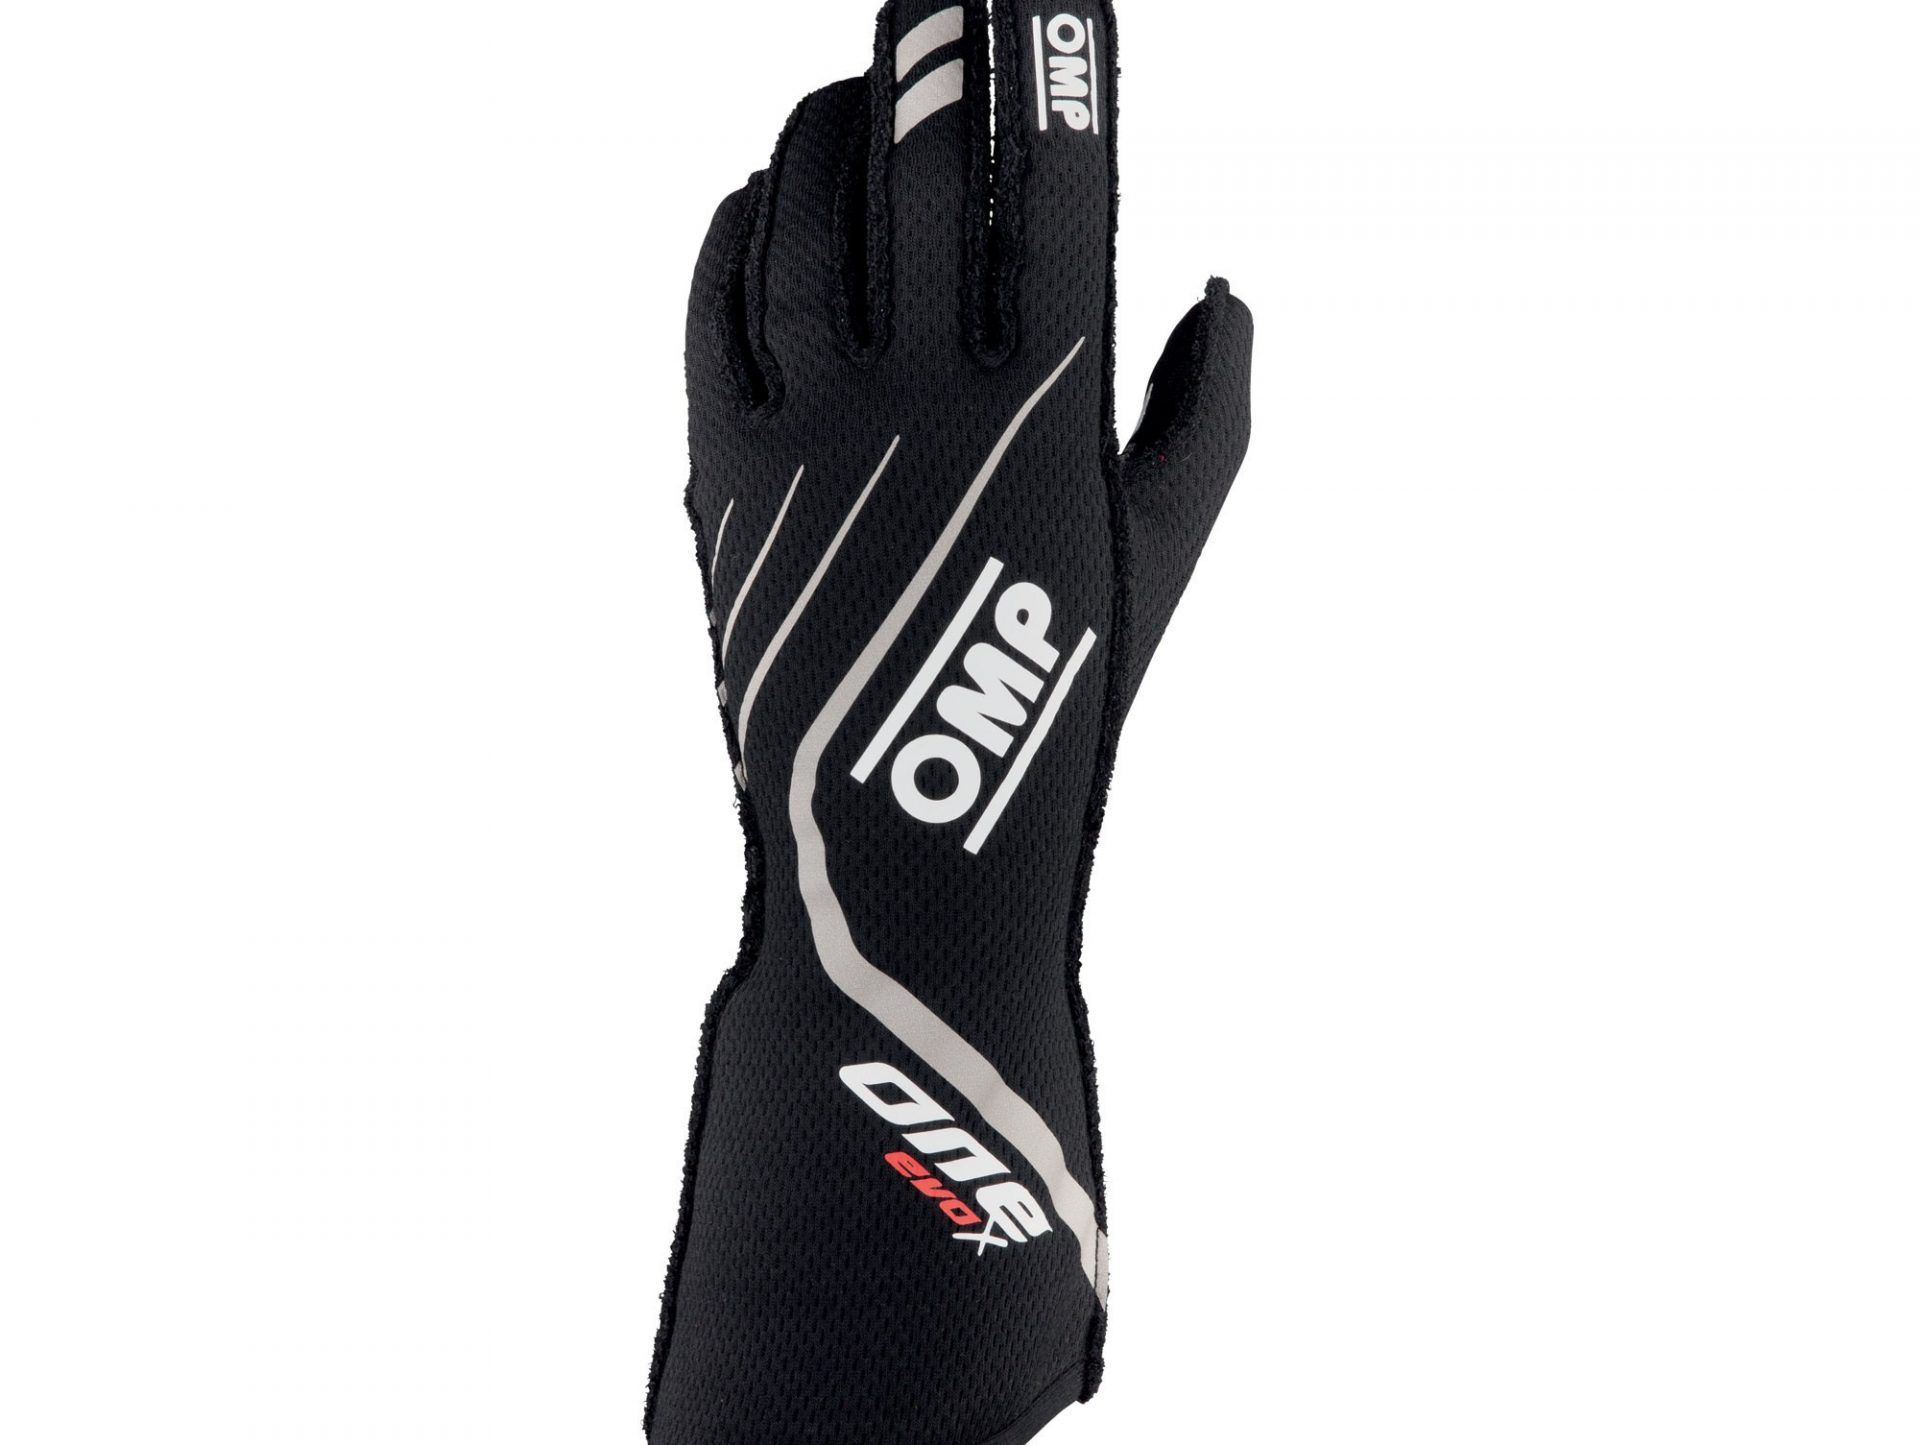 Нов продукт: OMP One Evo X, FIA Gloves